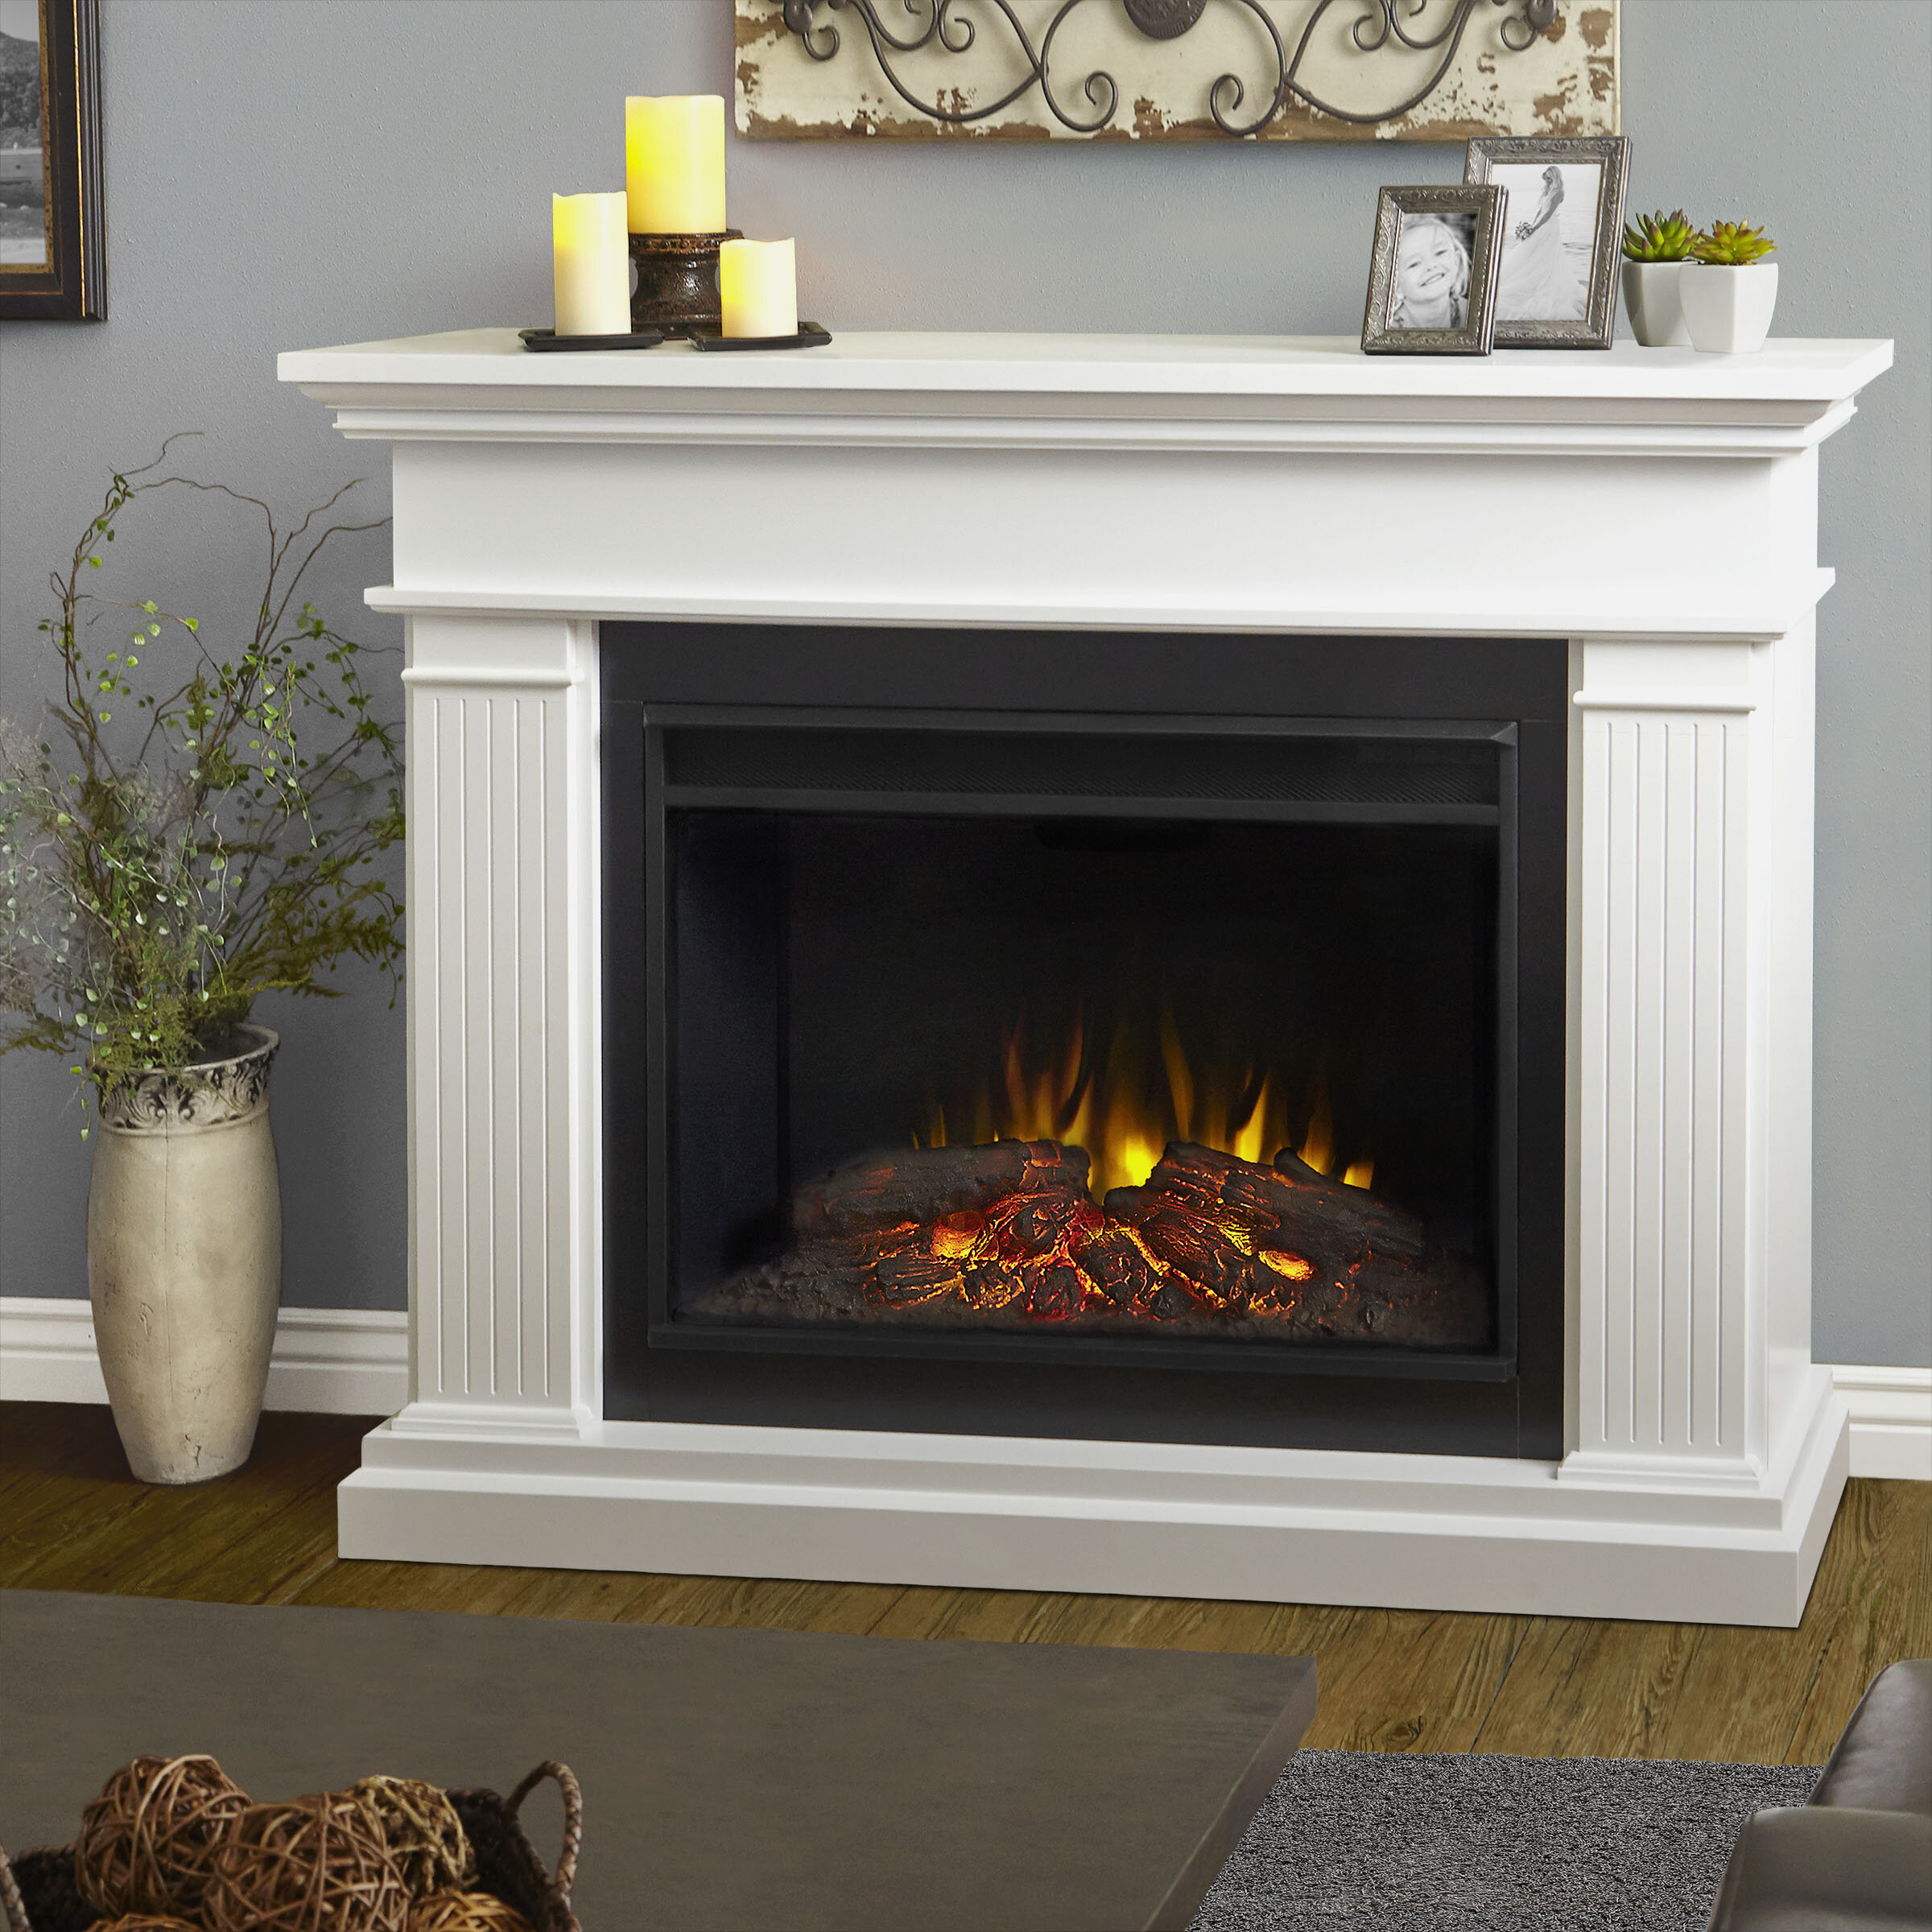 Wayfair Fireplace Mantel Package Electric Fireplaces Stoves You Ll Love In 2021